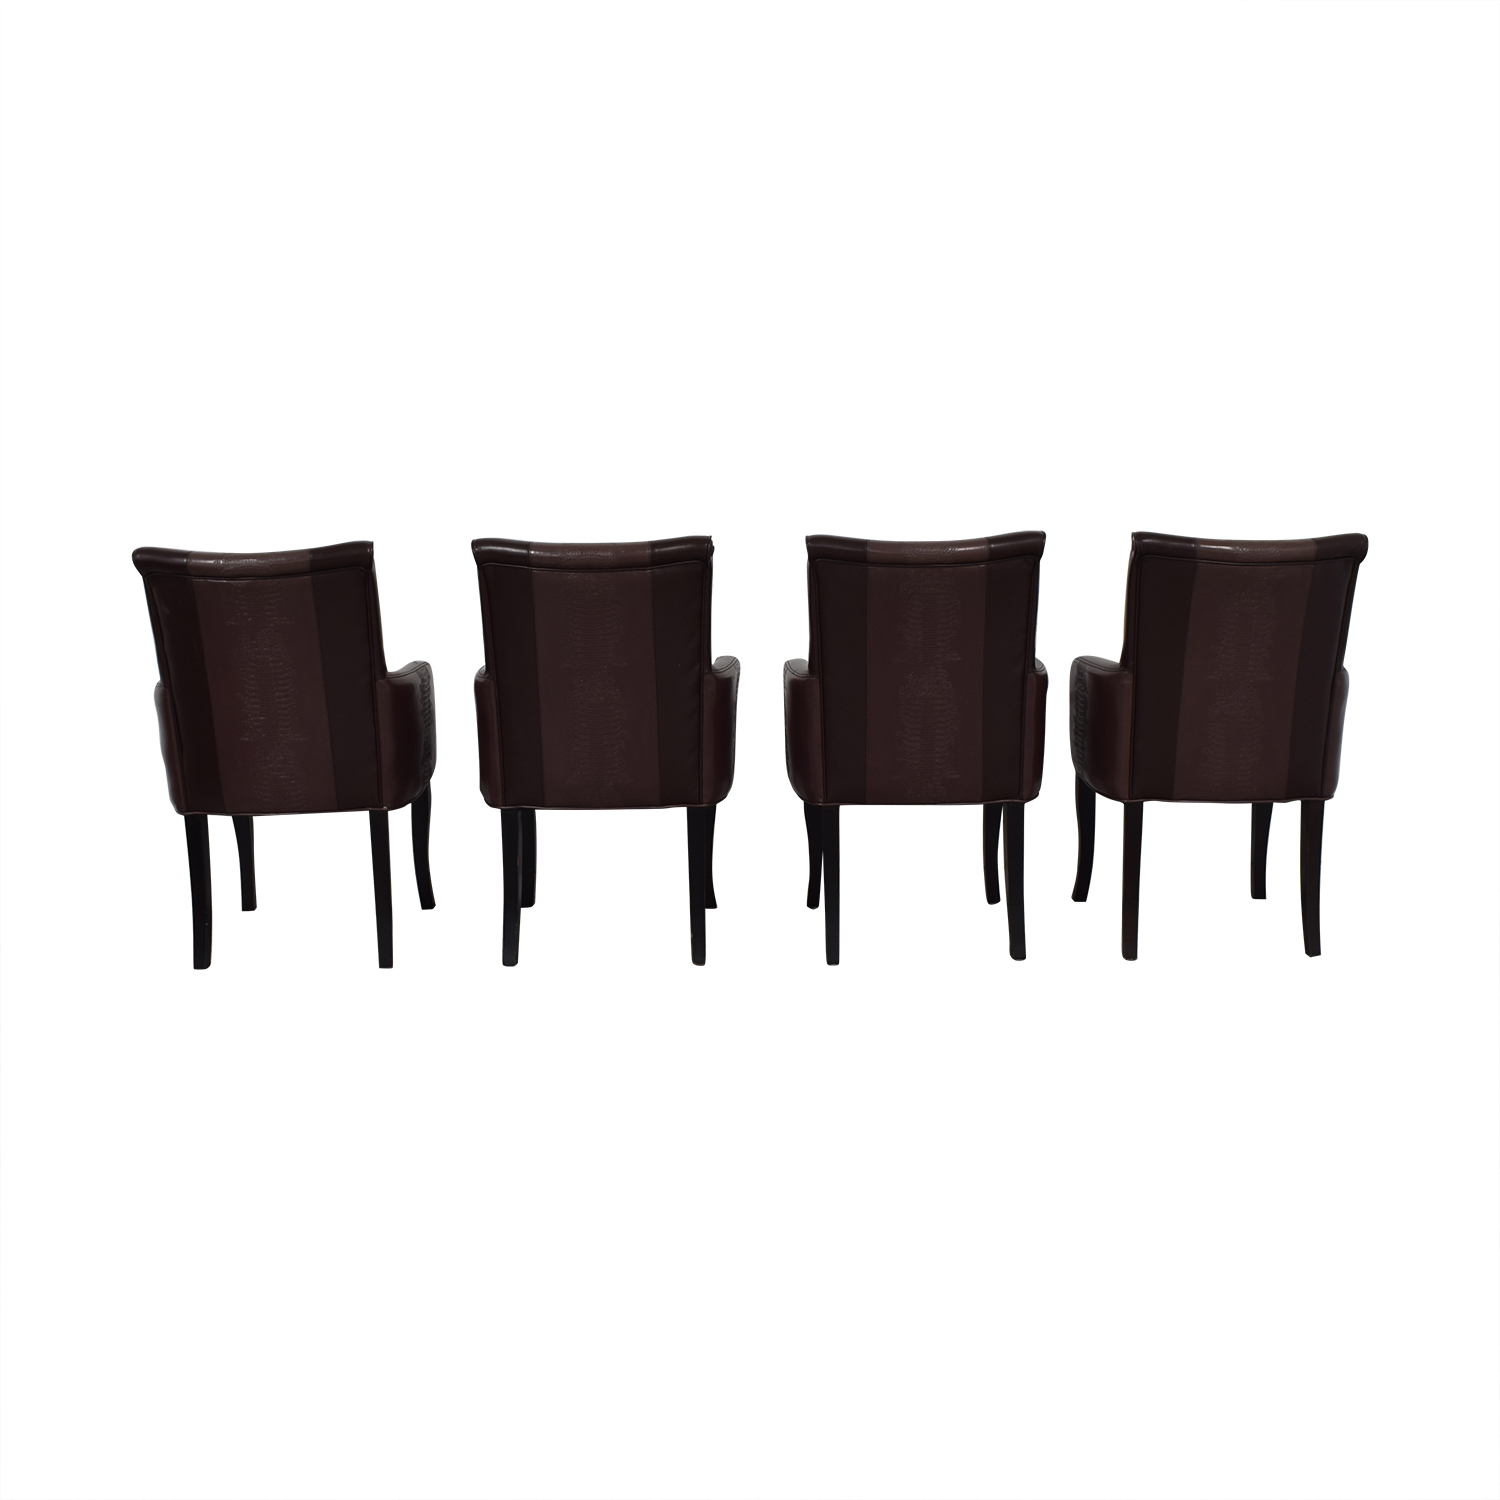 Bloomingdale's Brown Leather Dining Chairs / Chairs